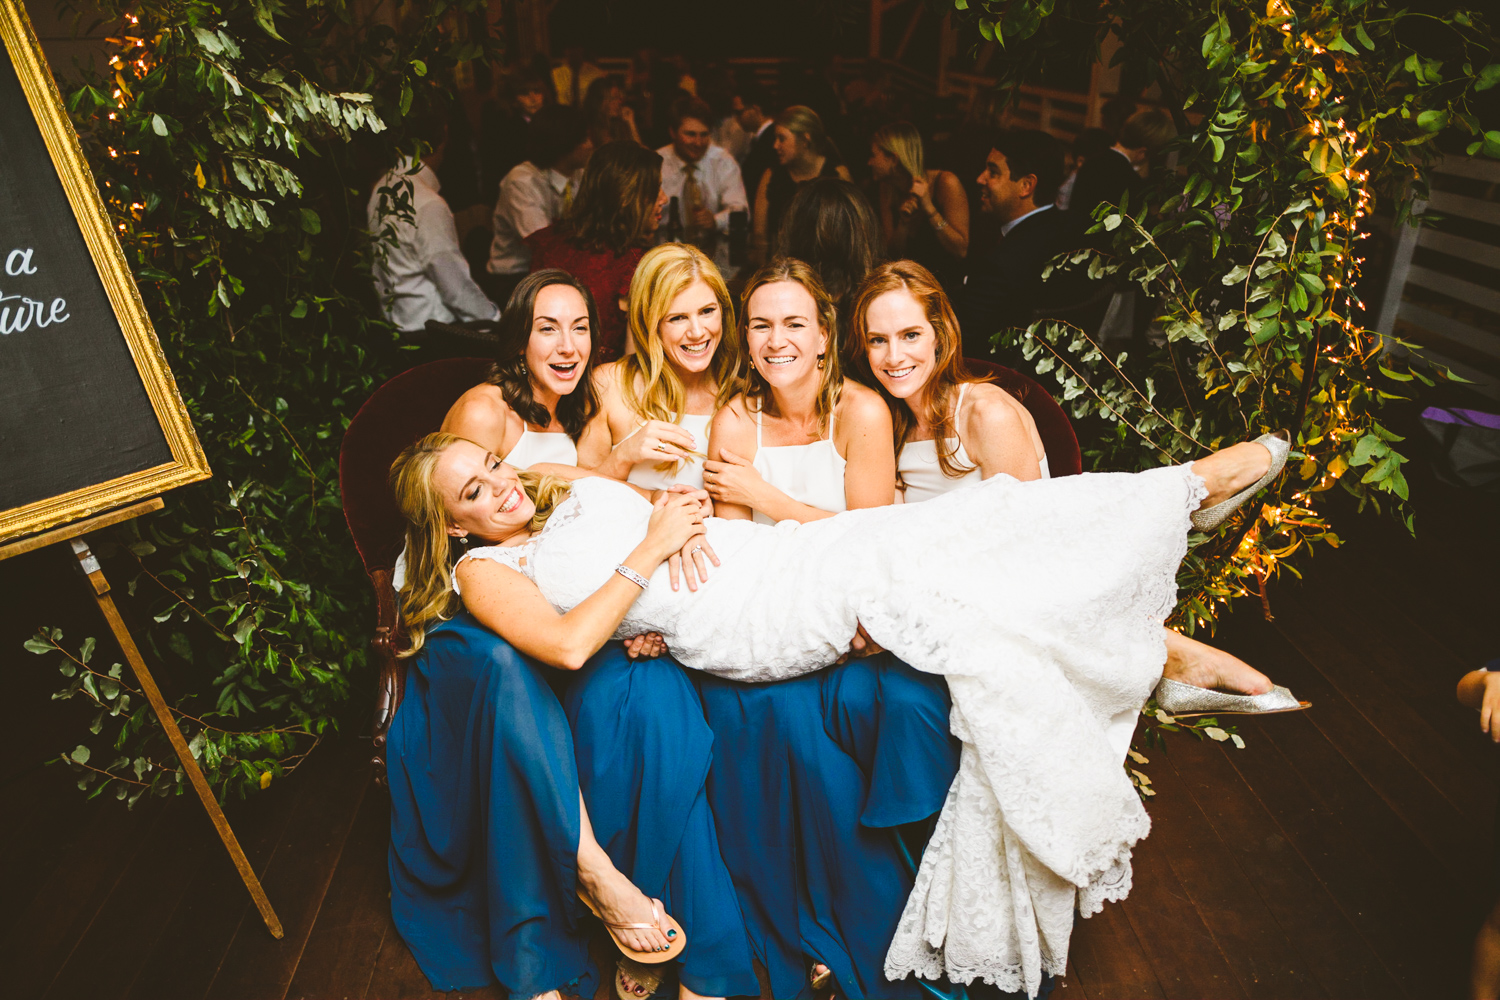 014 - bridesmaids hold up the bride for a group photo.jpg